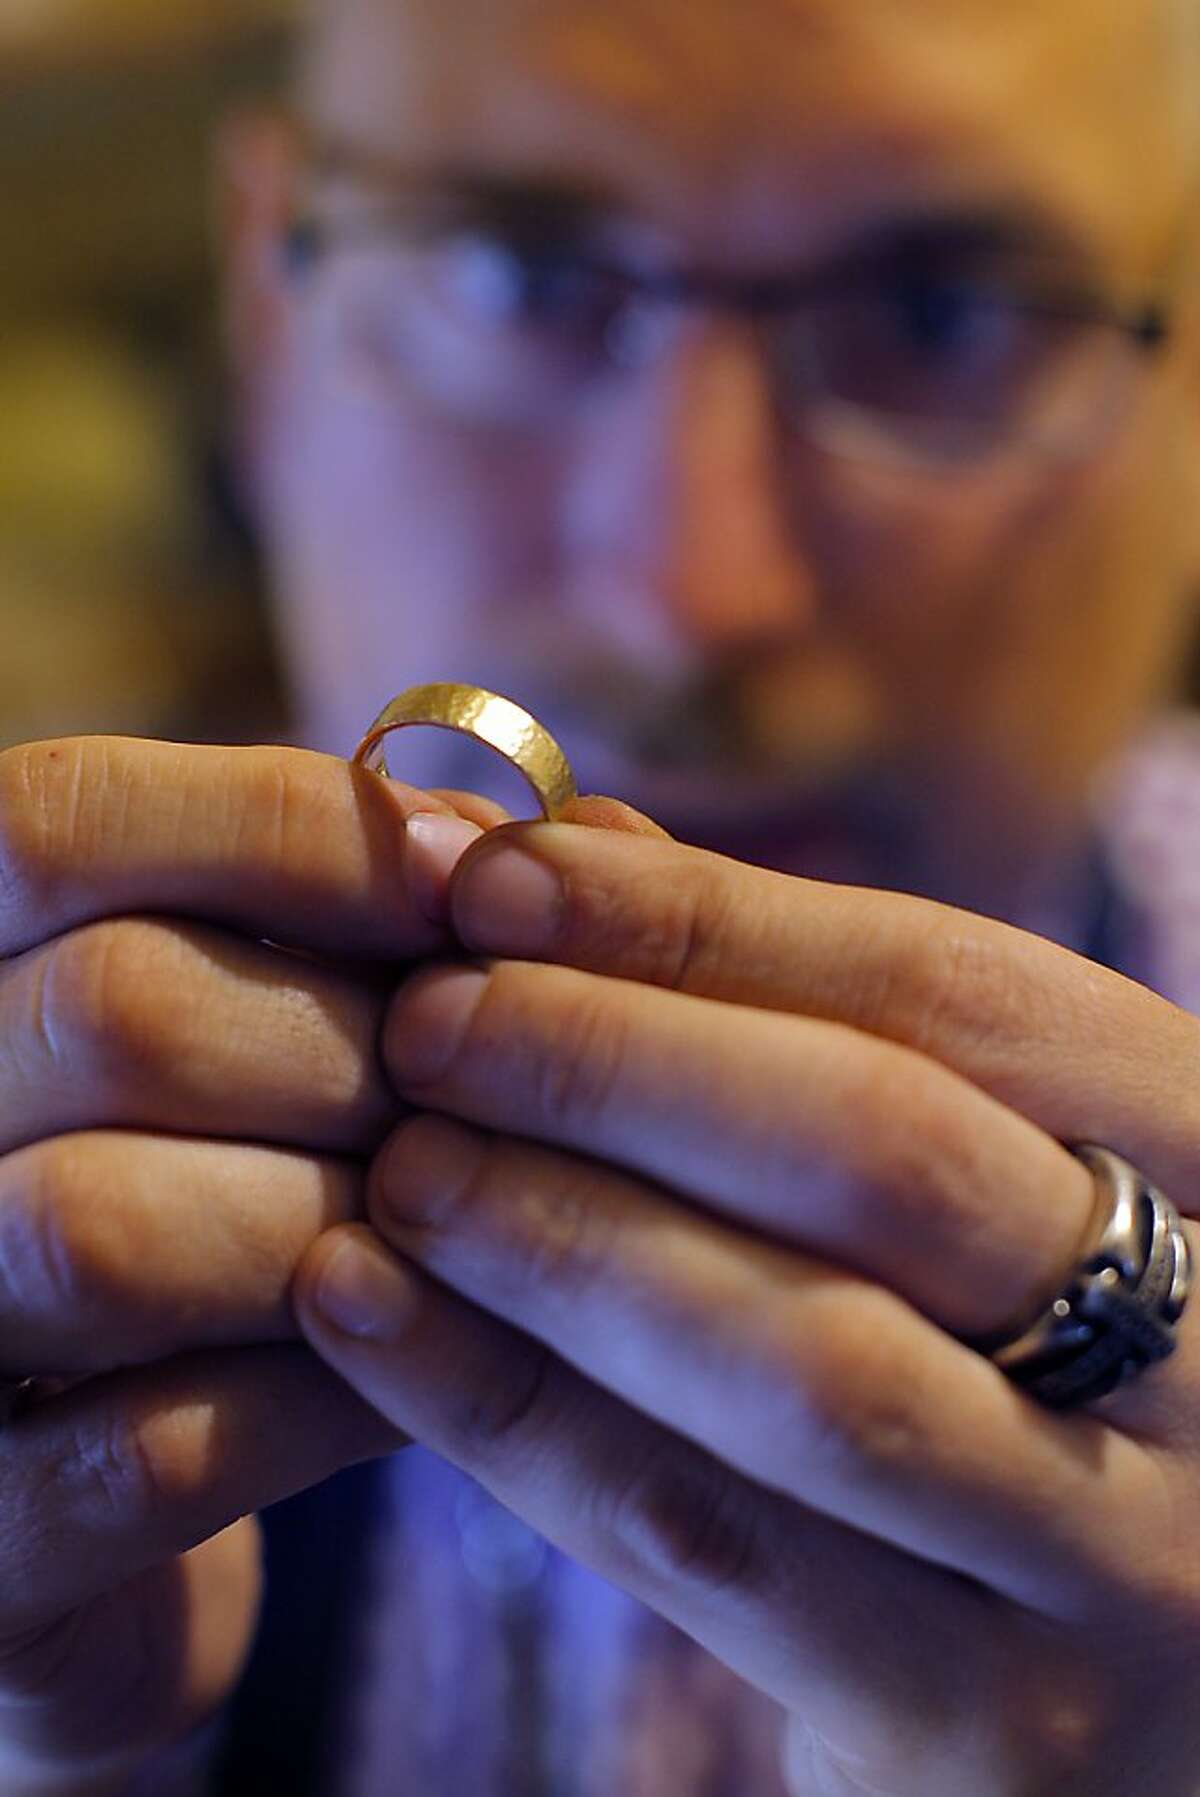 Shawn Higgins inspects a gold wedding bend he just finished working on in the back of his eco jewels store in the Castro, San Francisco, Calif. on May 14, 2012.